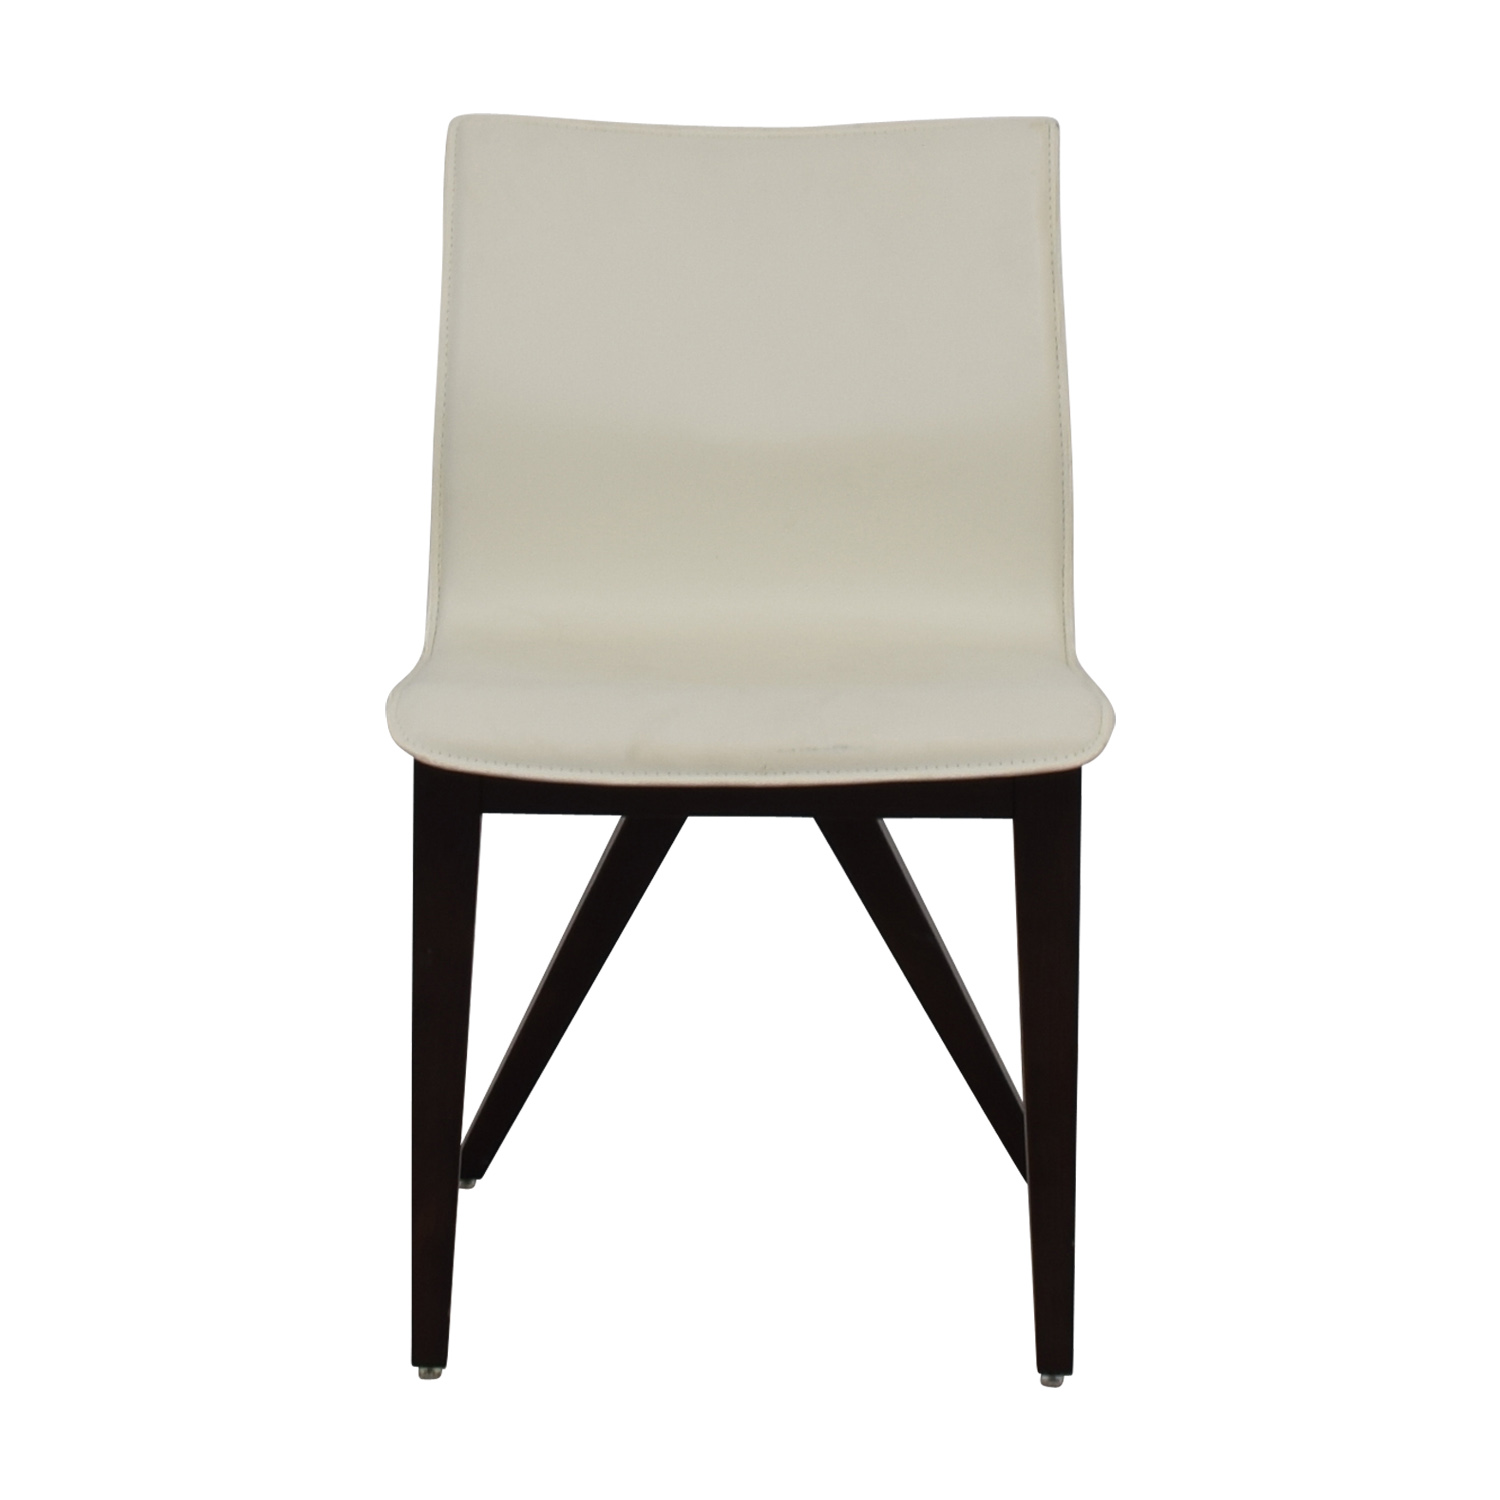 Cliff Young Cliff Young X-Back White Leather Chair Sofas